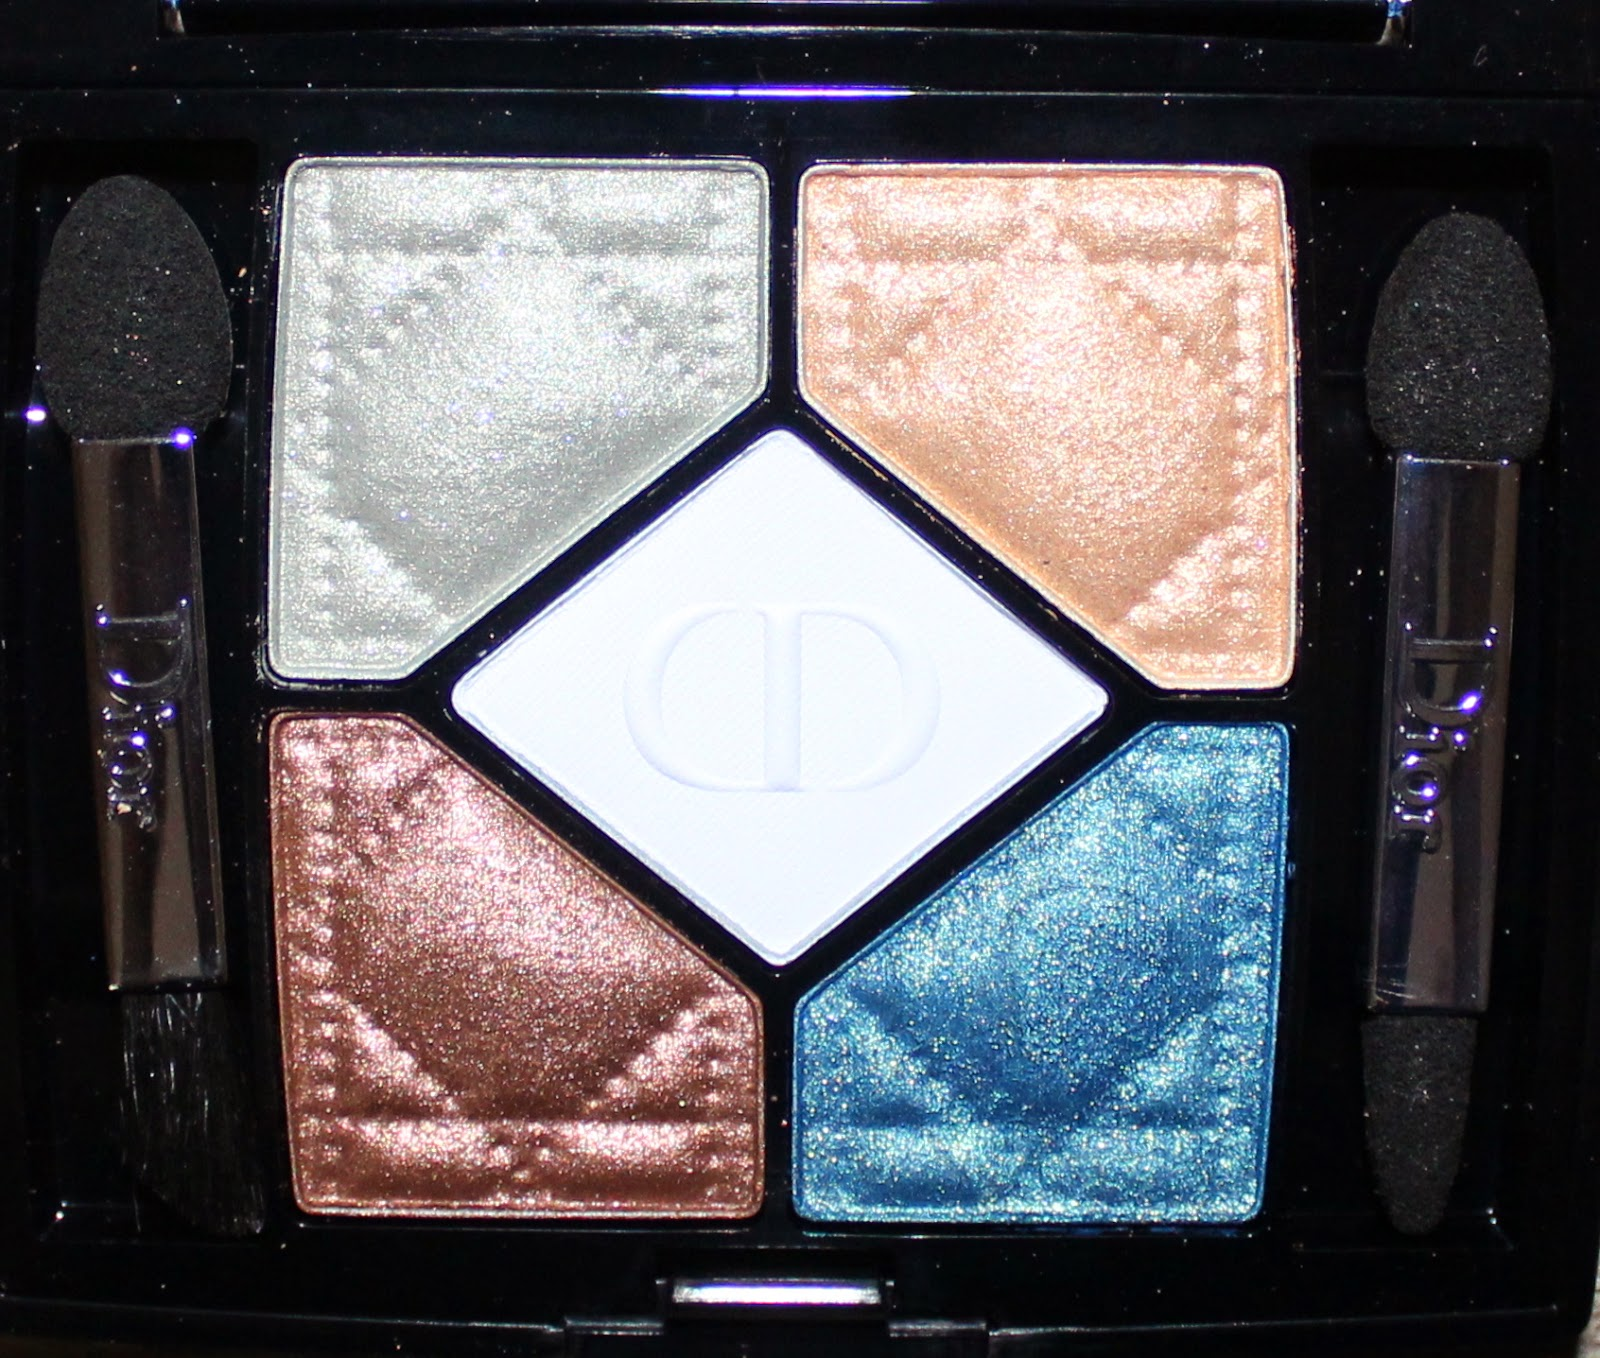 Dior 5 Couleurs Eyeshadow Palette in Contraste Horizon